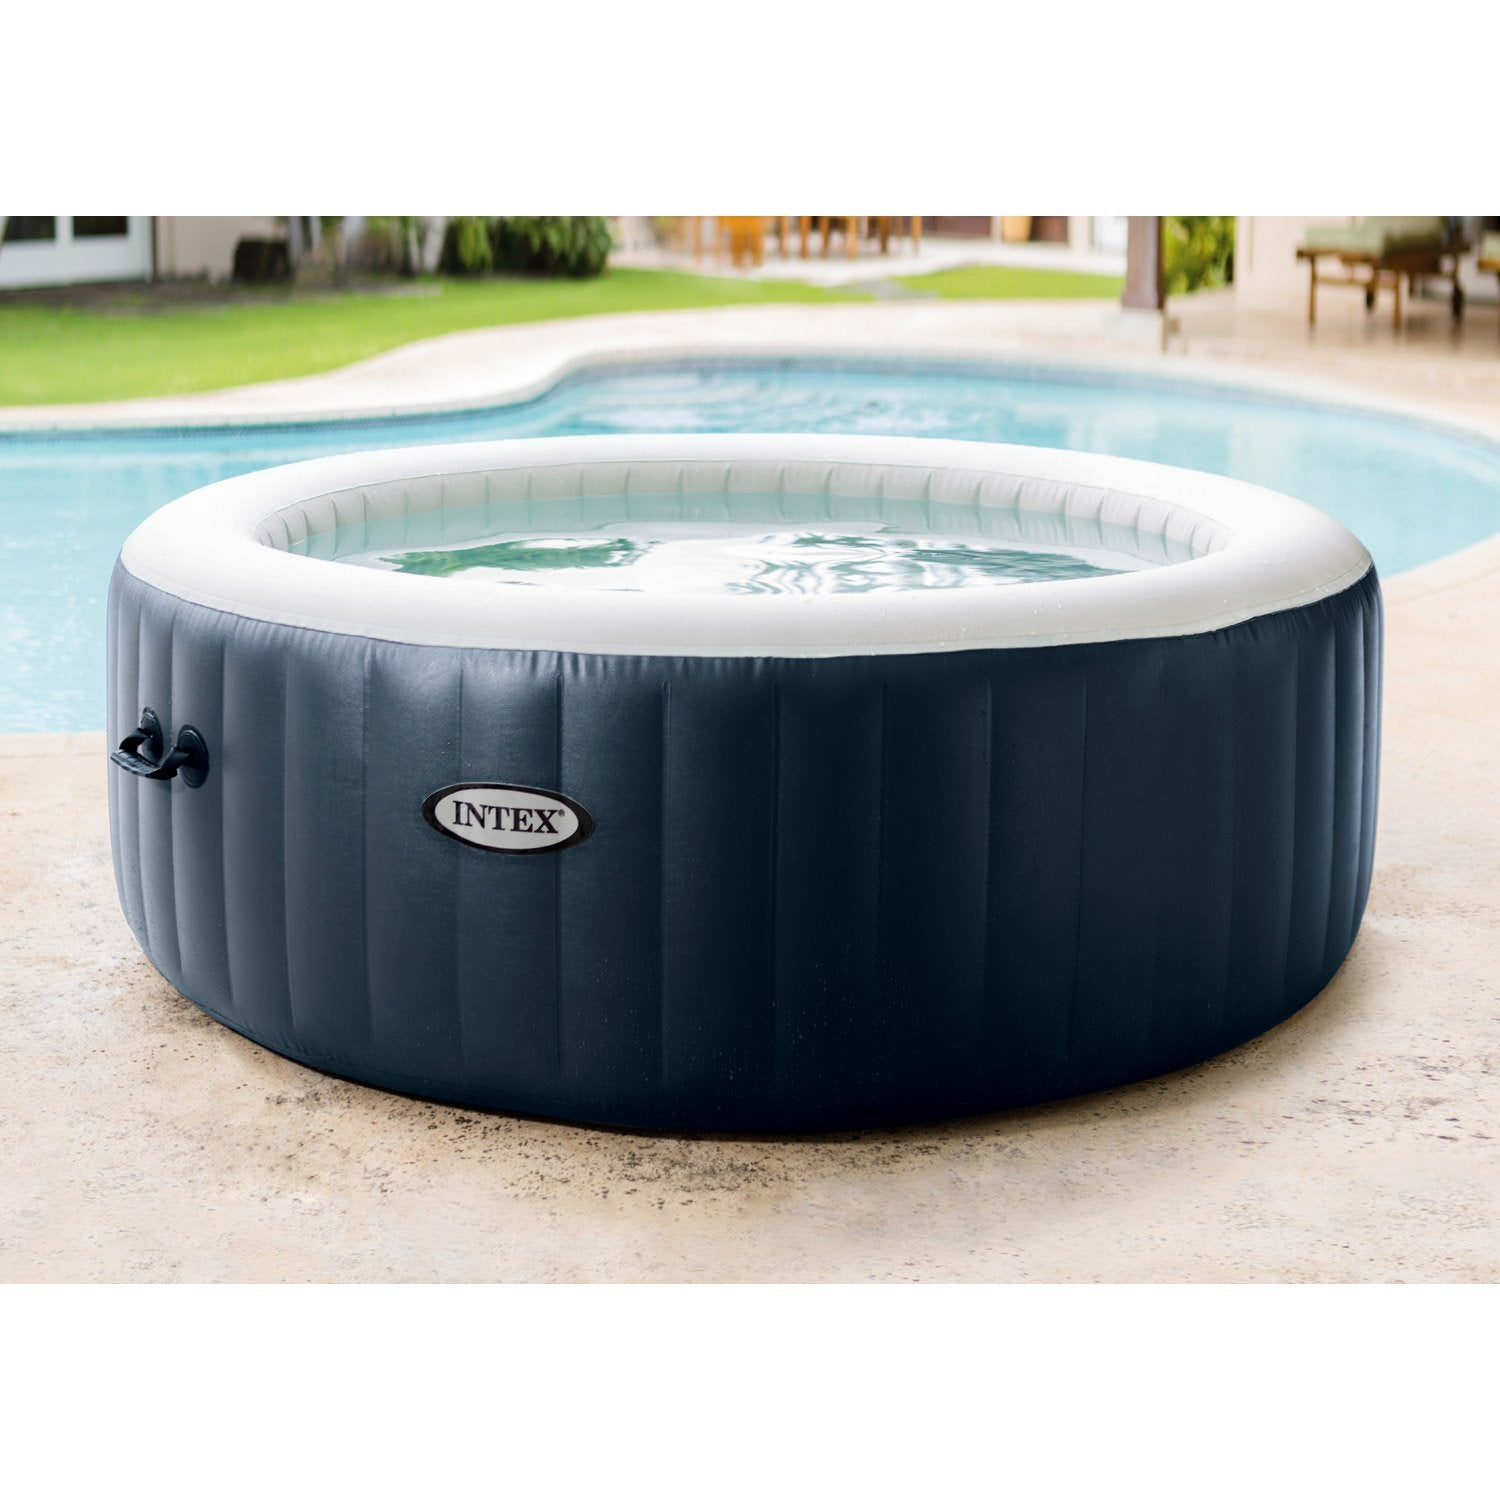 Spa gonflable intex purespa bulles blue navy rond 6 places assises leroy m - Jacuzzi gonflable 2 places ...